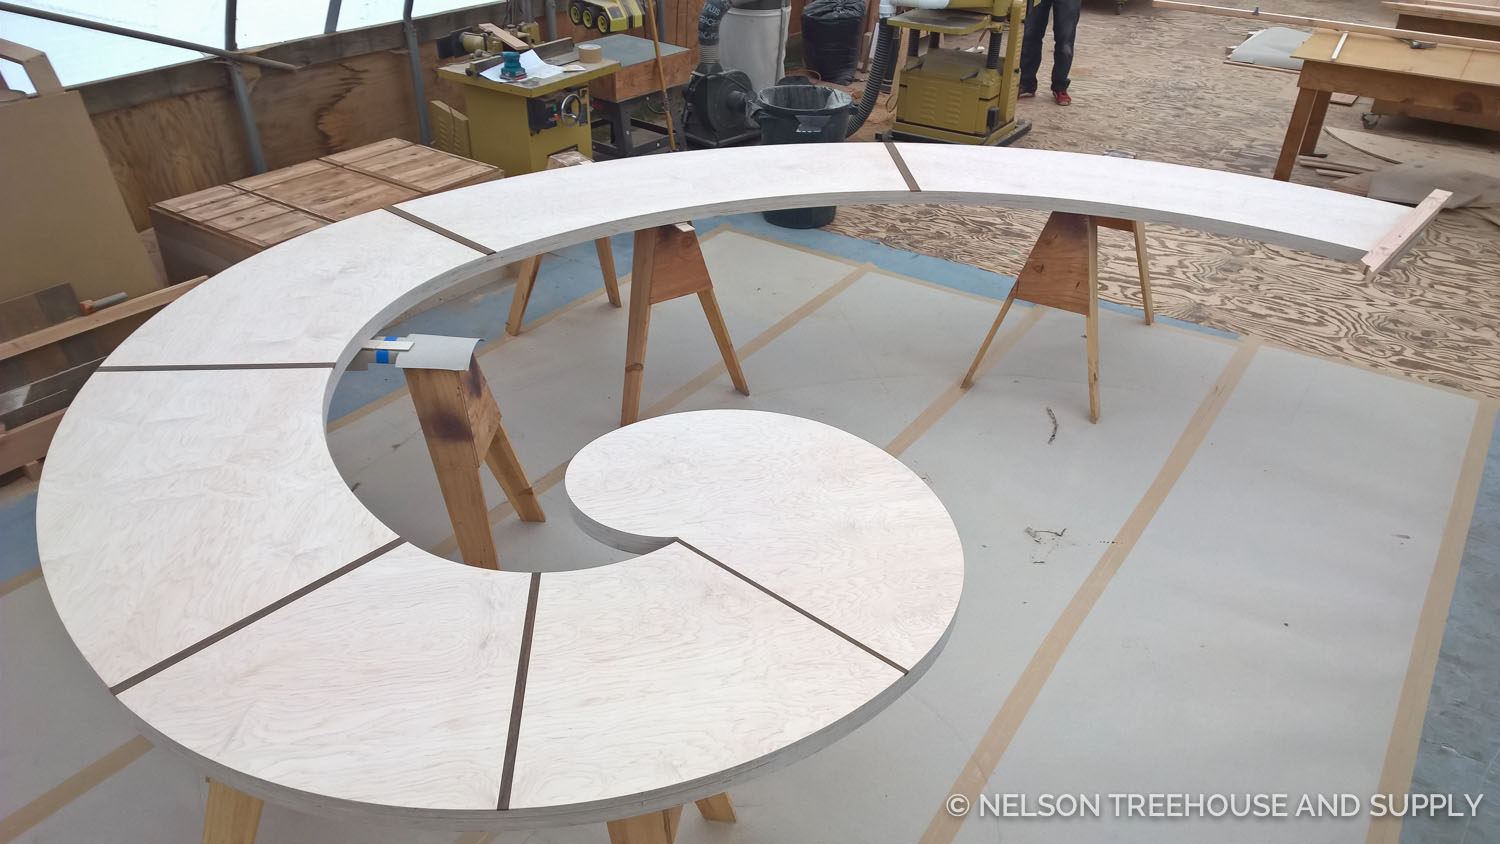 Completed surface of the Fibonacci Spiral Bench